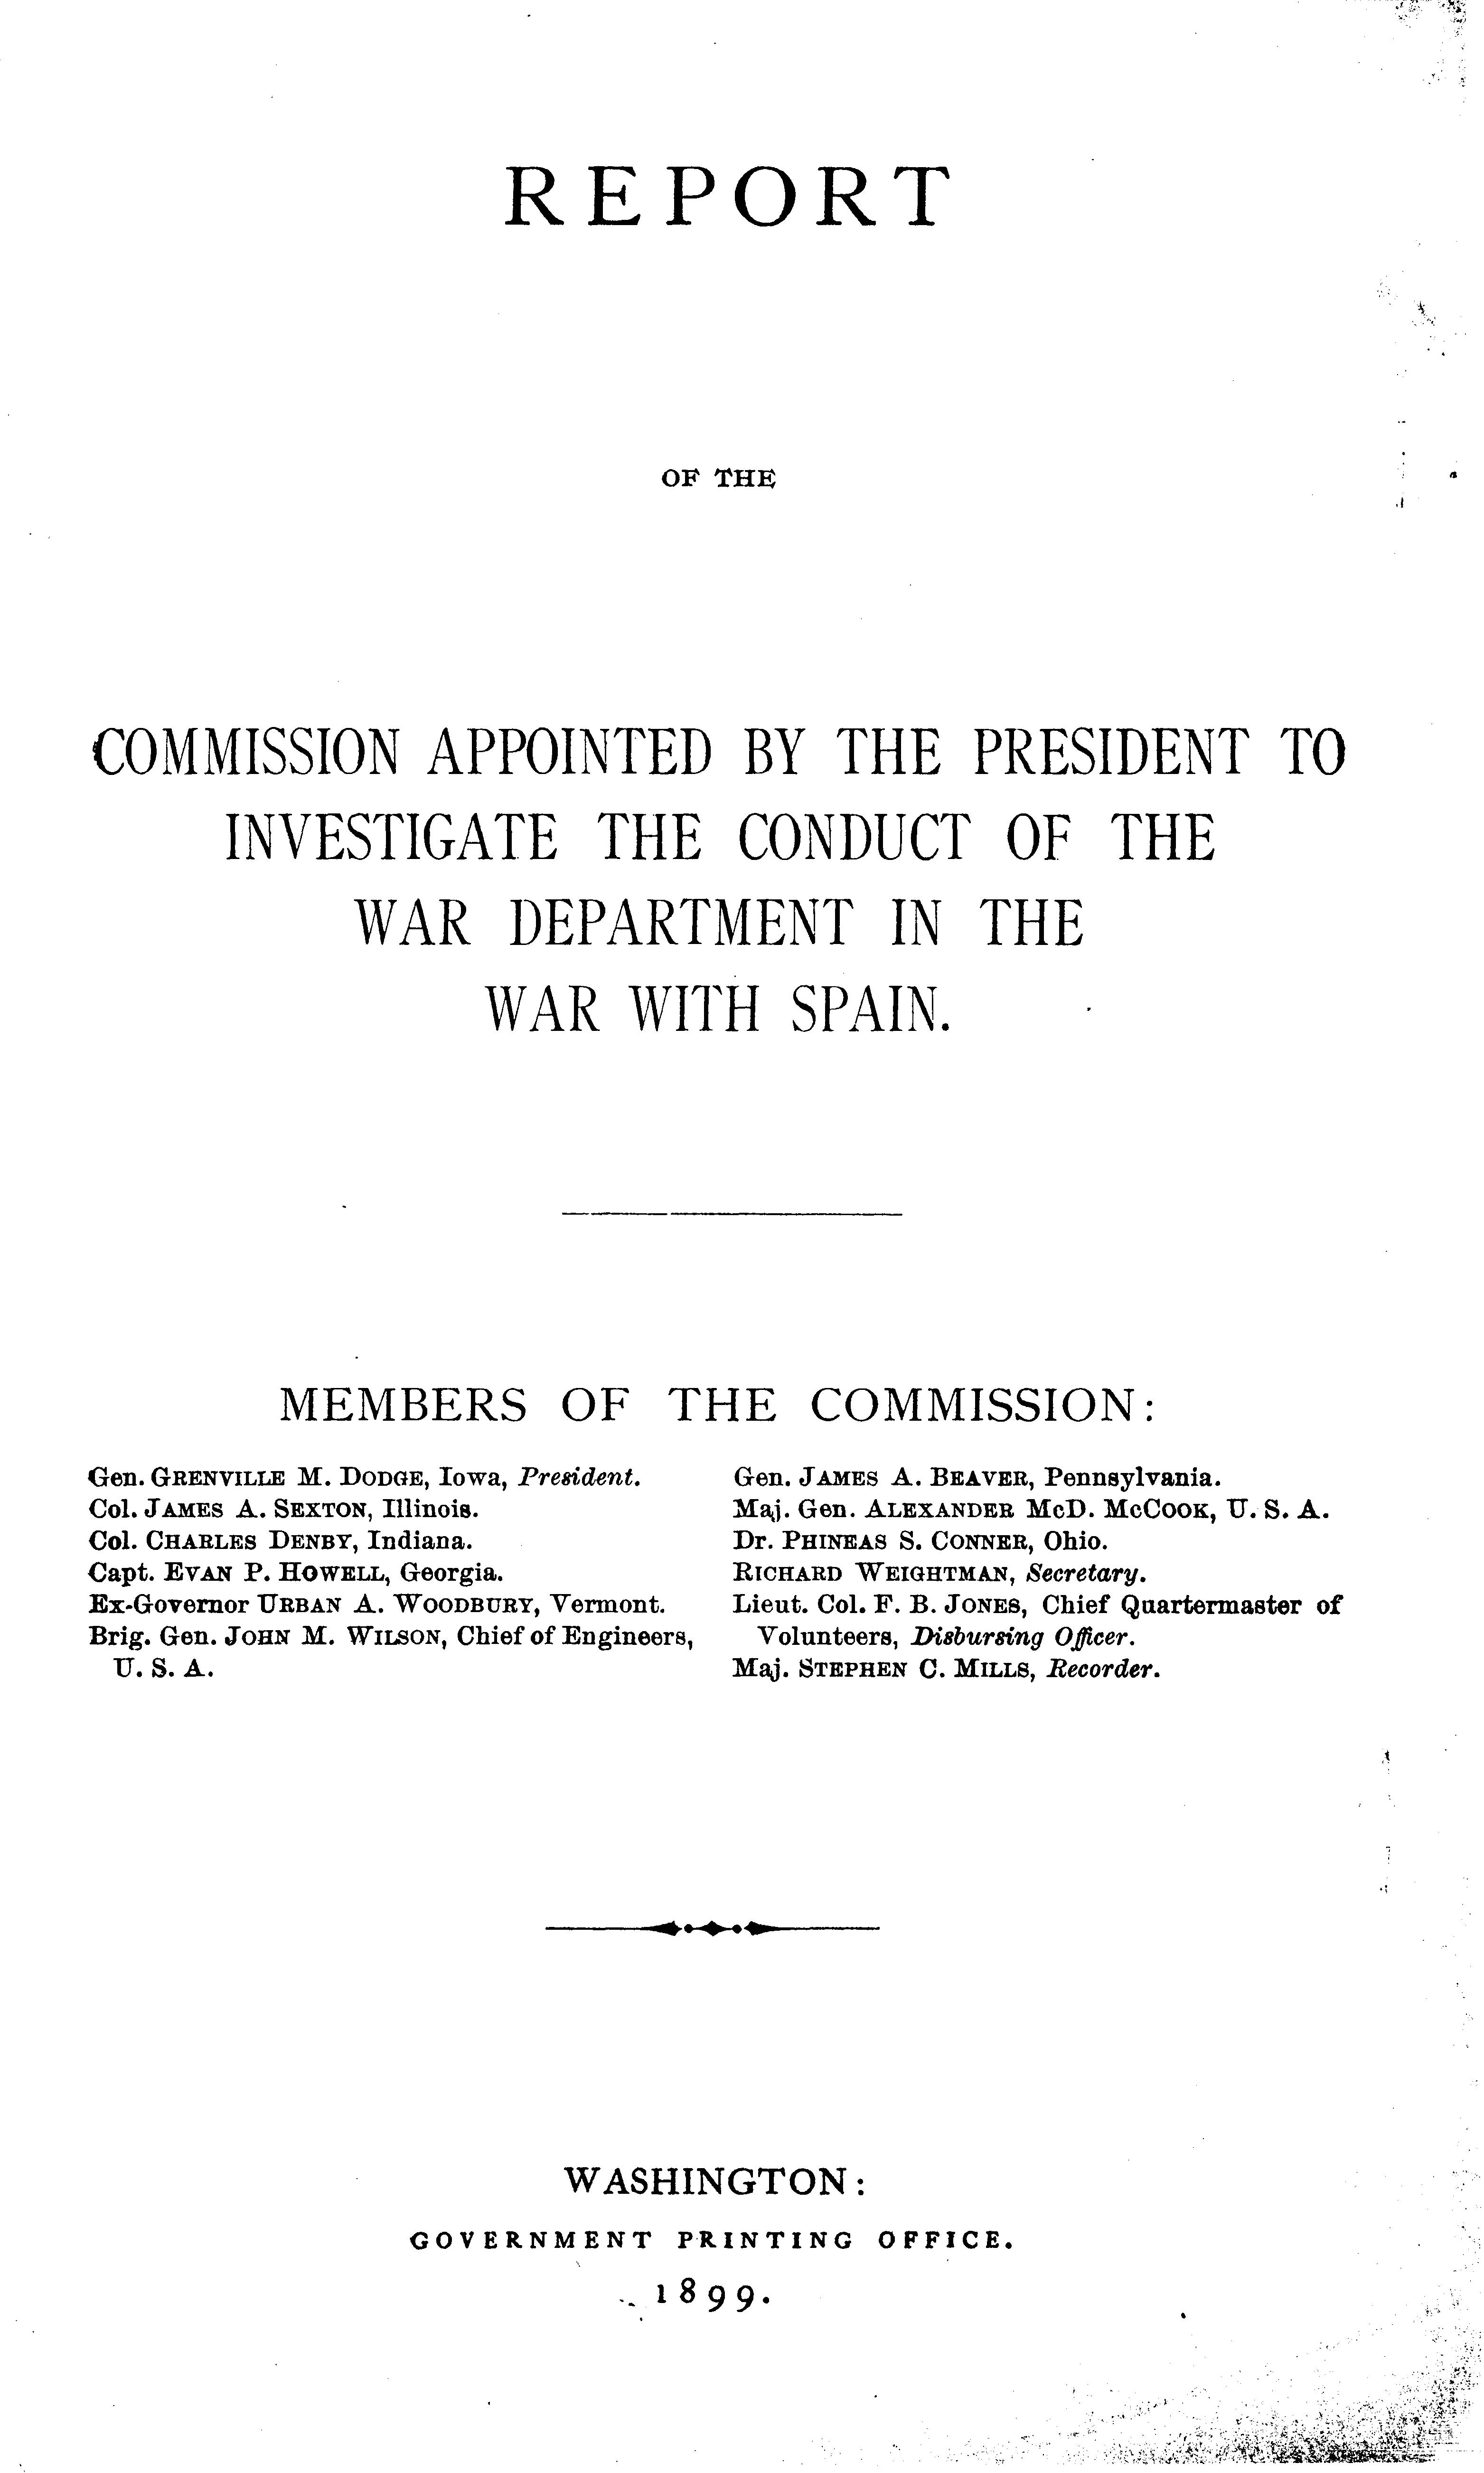 Report of the Commission appointed by the President to investigate the conduct of the War Department in the war with Spain ... by United States. Commission appointed by the President to investigate the conduct of the War dept. in the war with Spain